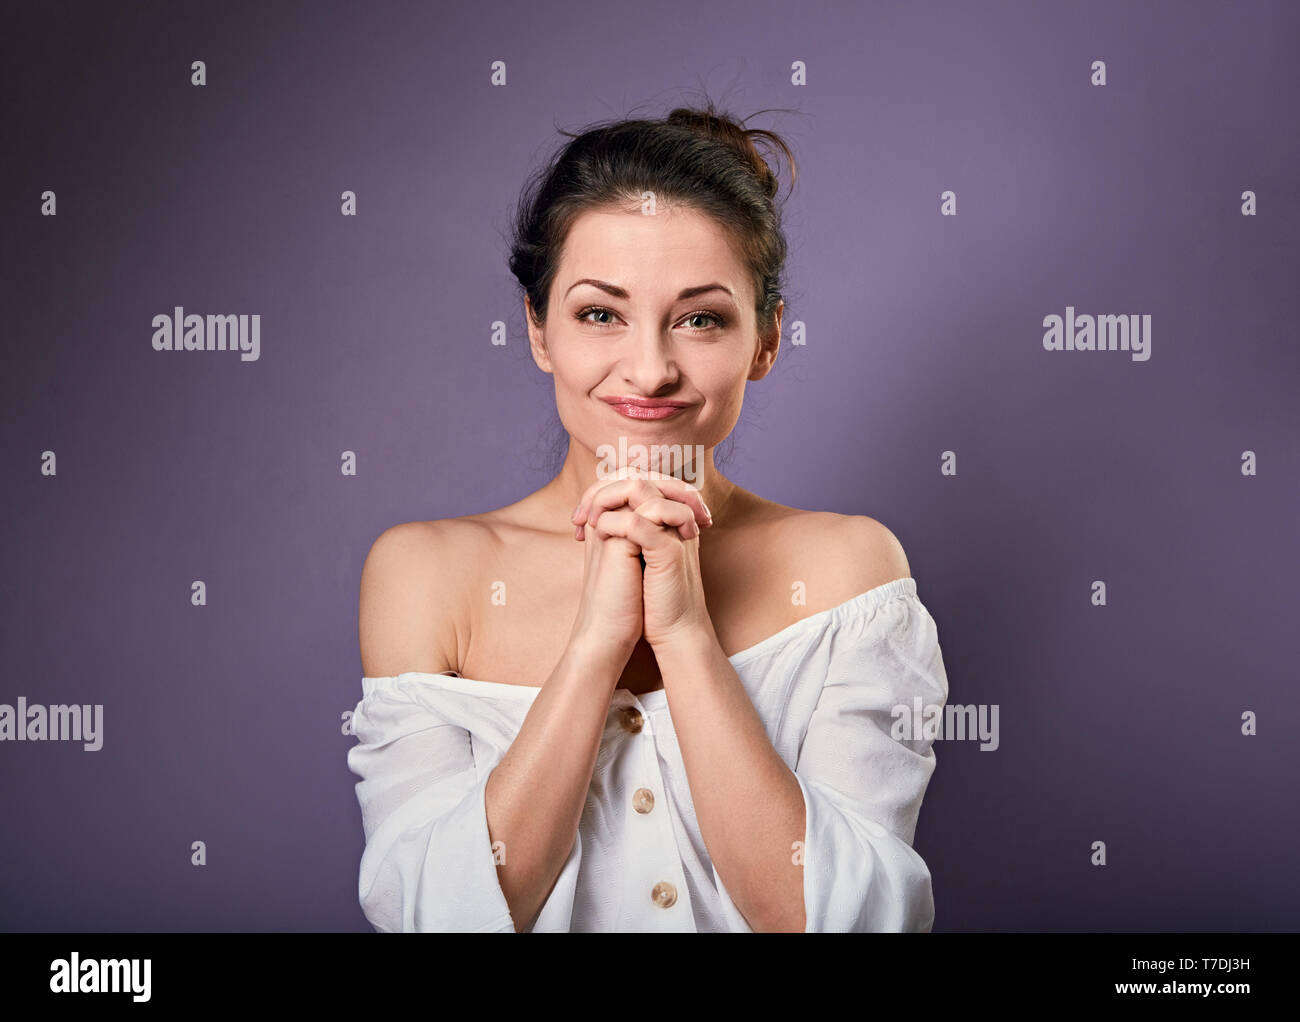 Beautiful excited fun grimacing woman in white shirt holding the hands under the face. Closeup portrait on empty purple copy space. - Stock Image